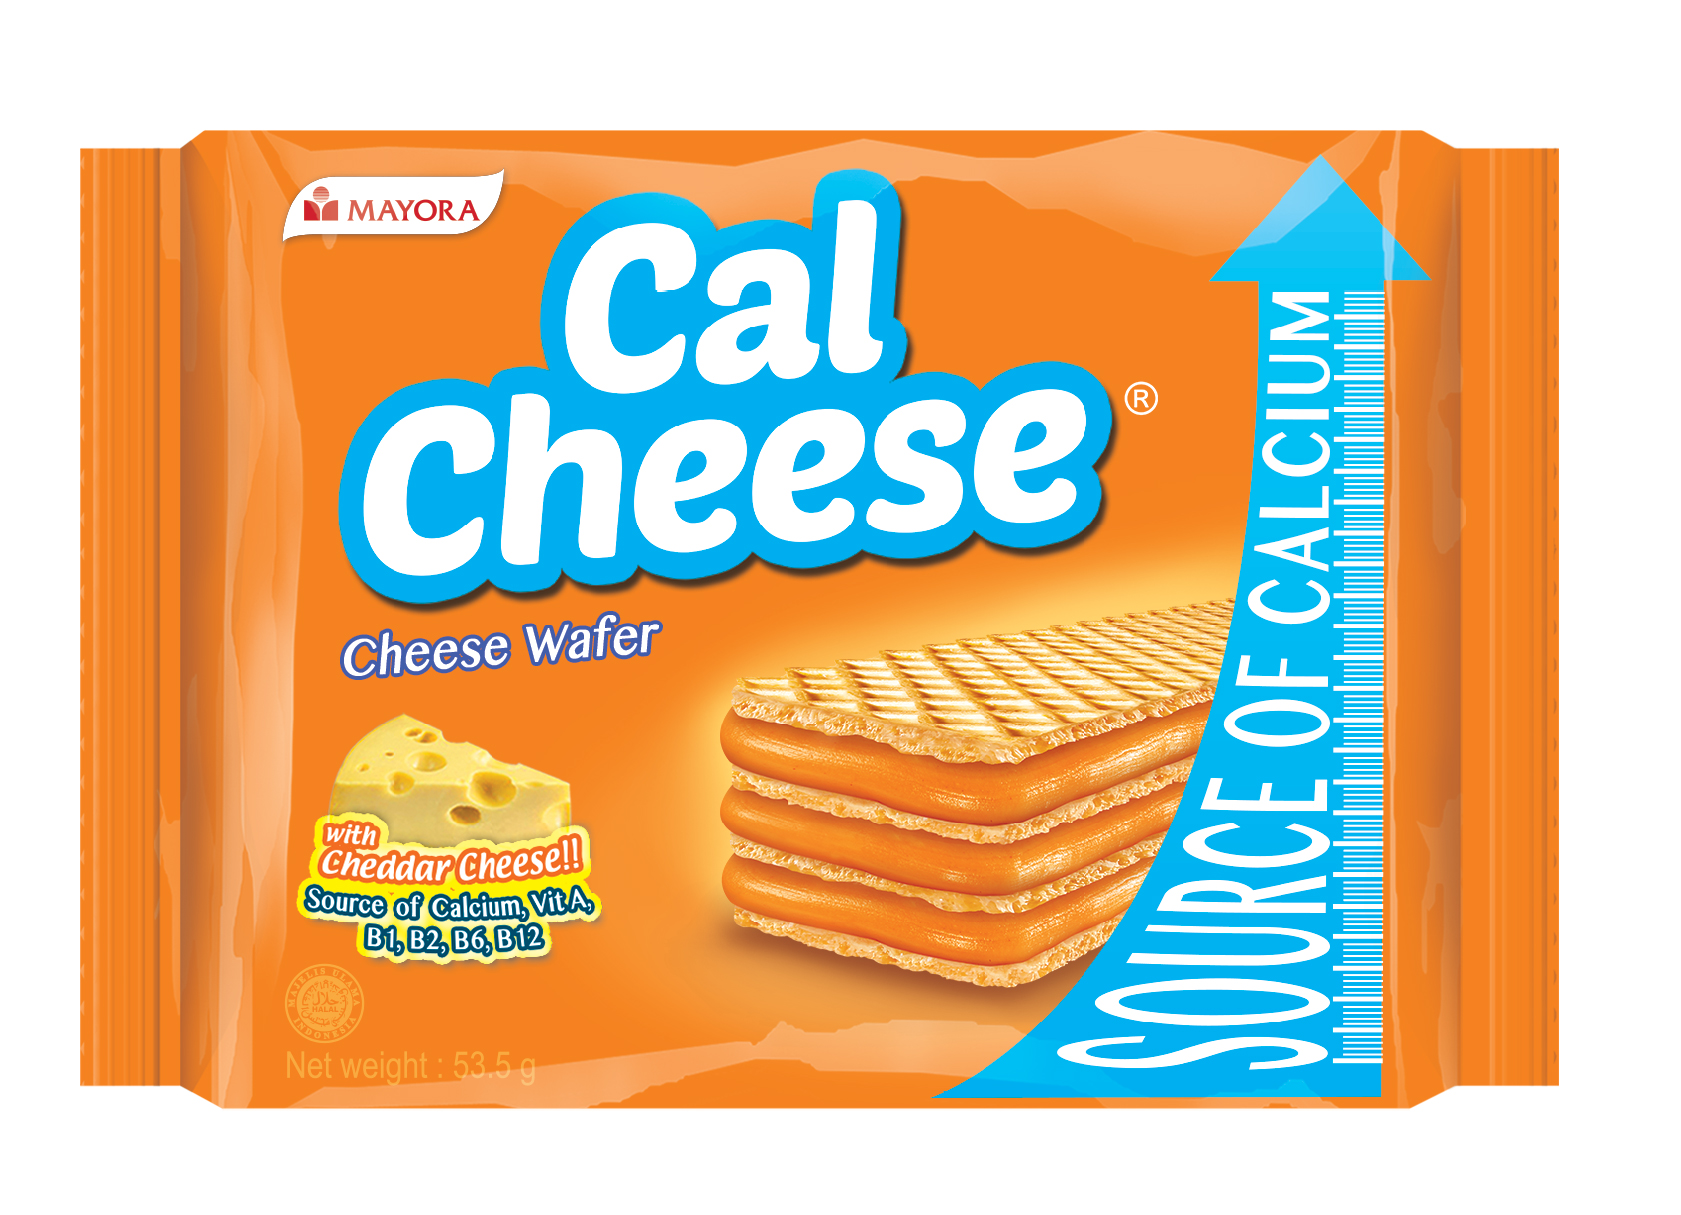 The newest cheese wafers in town!